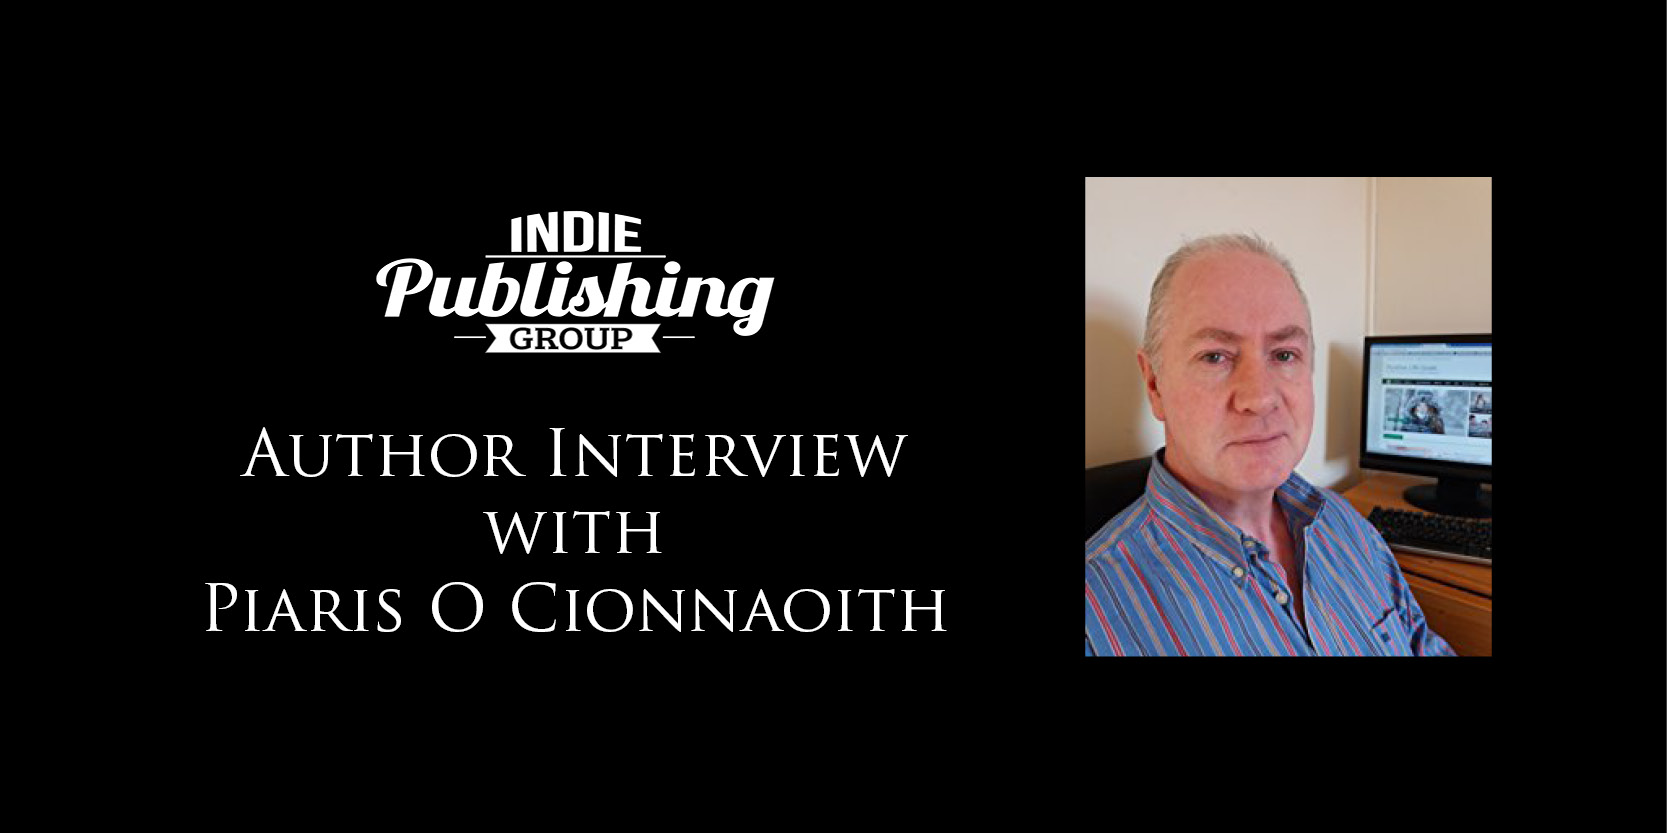 Author Interview with Píaras Ó Cíonnaoíth